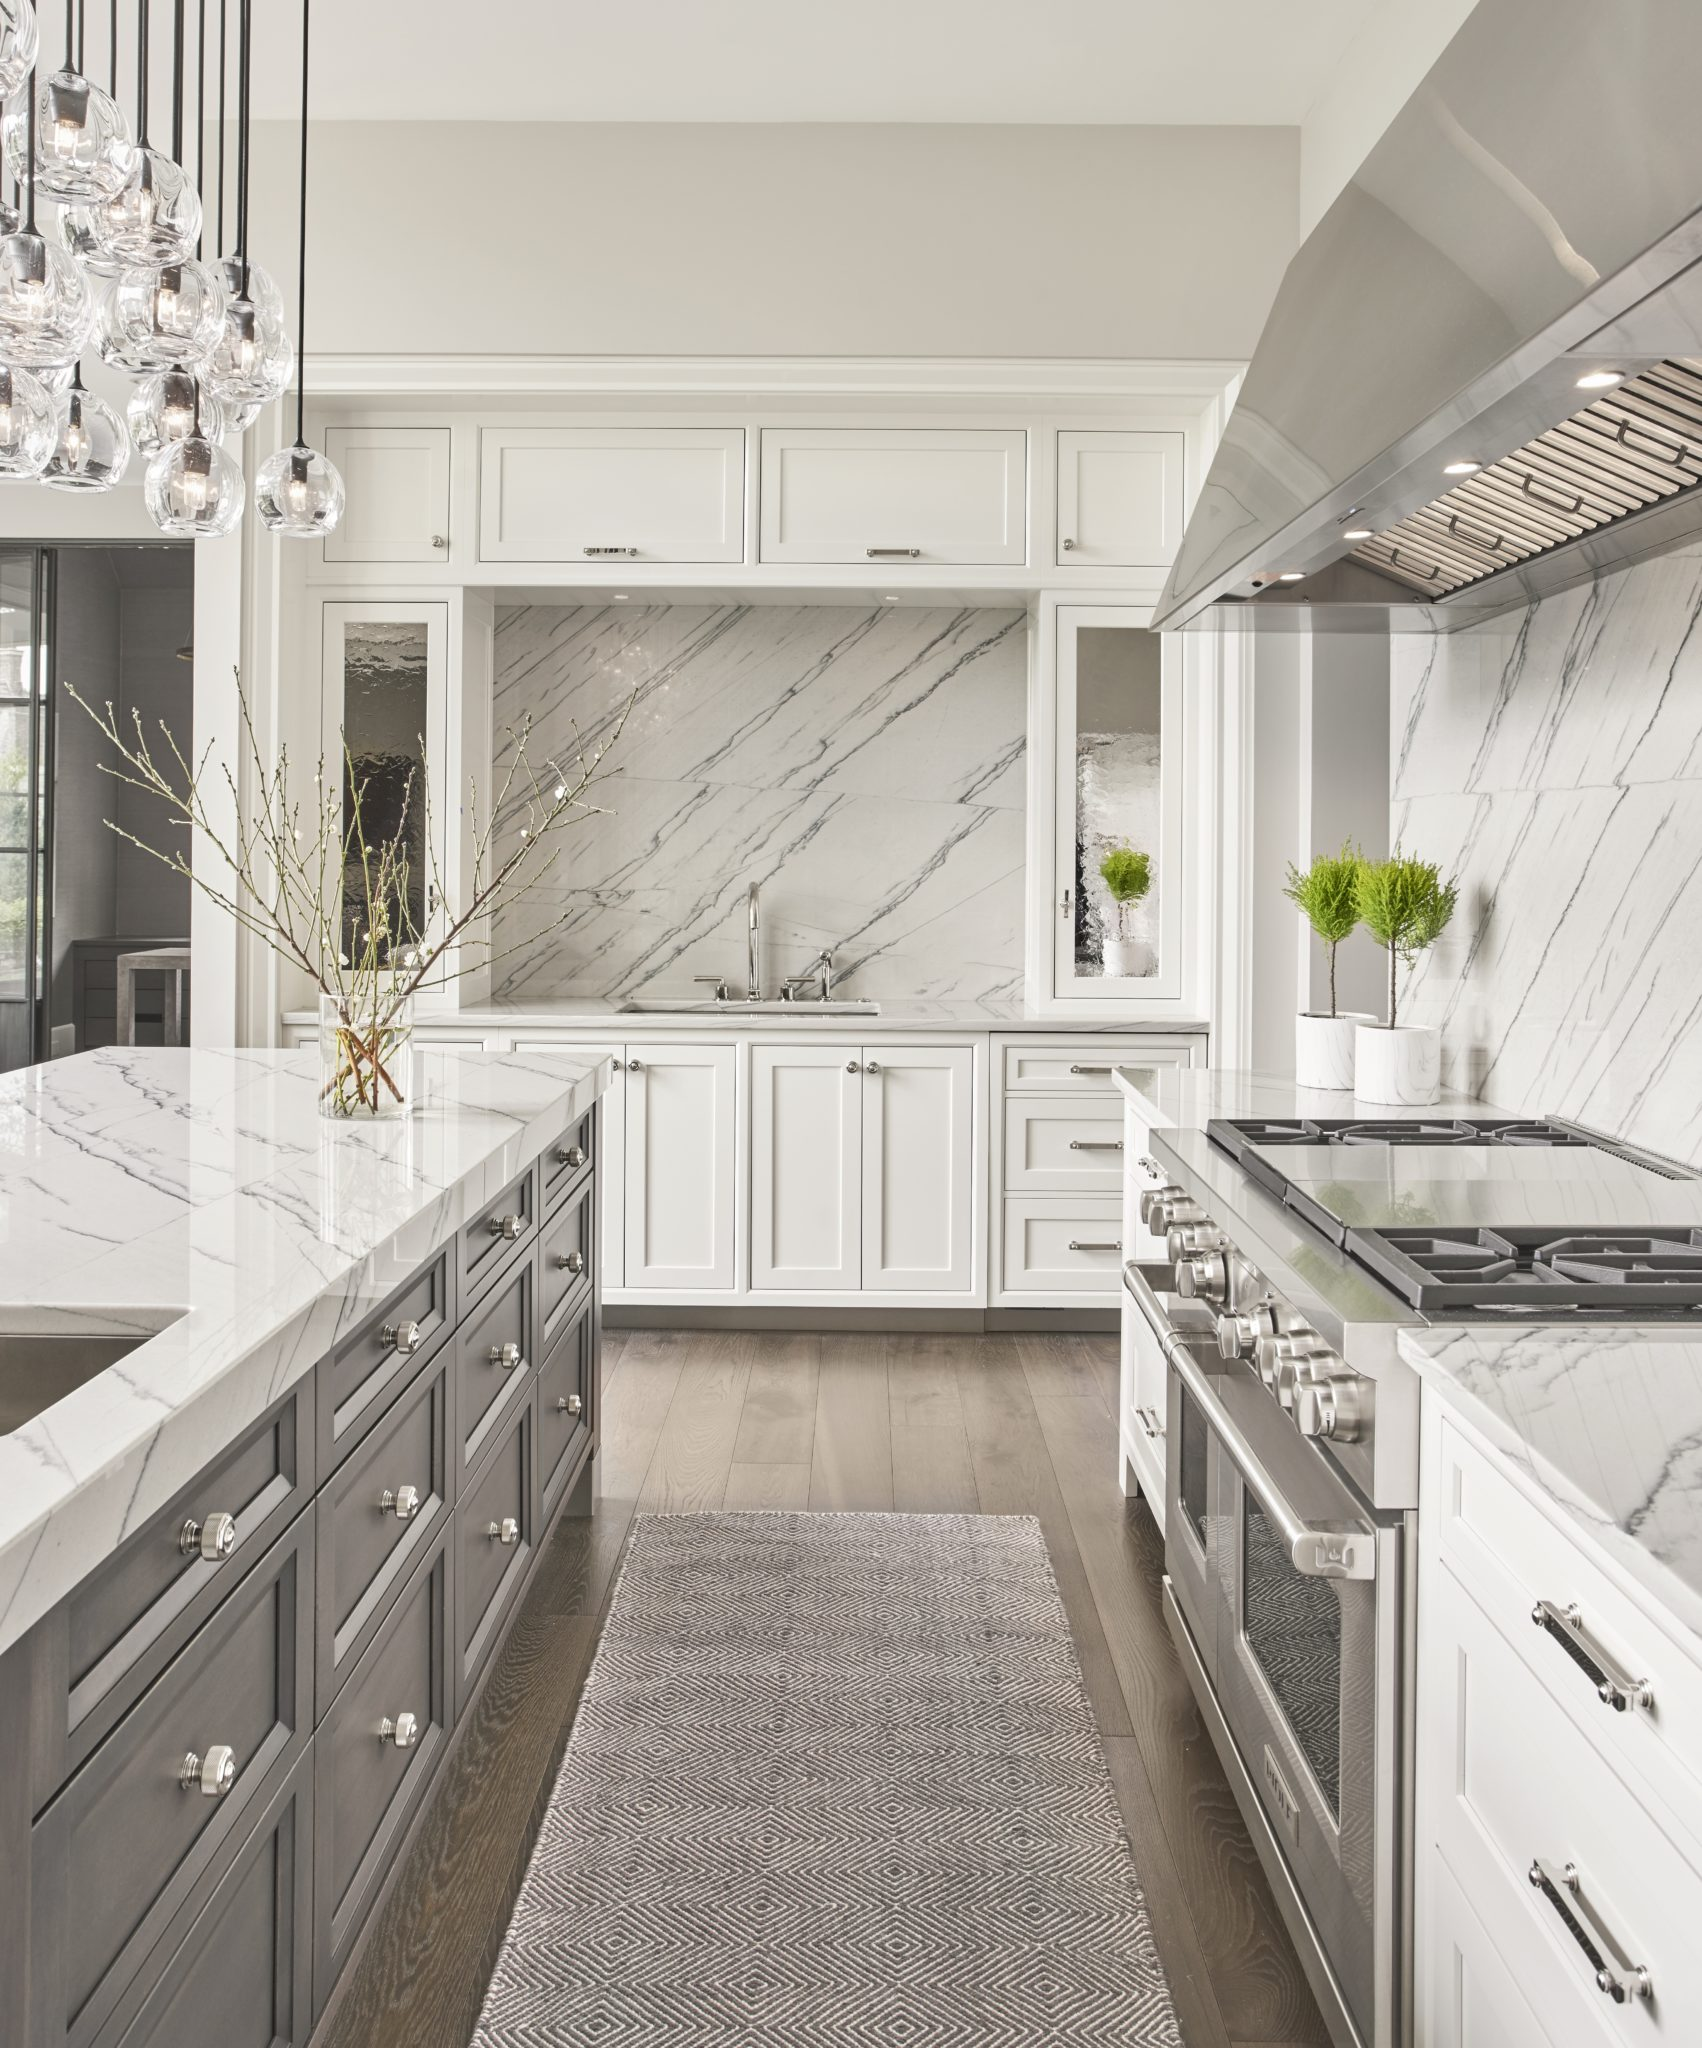 Bright and open kitchen with stainless steel and marble accents. By Elizabeth Krueger Design